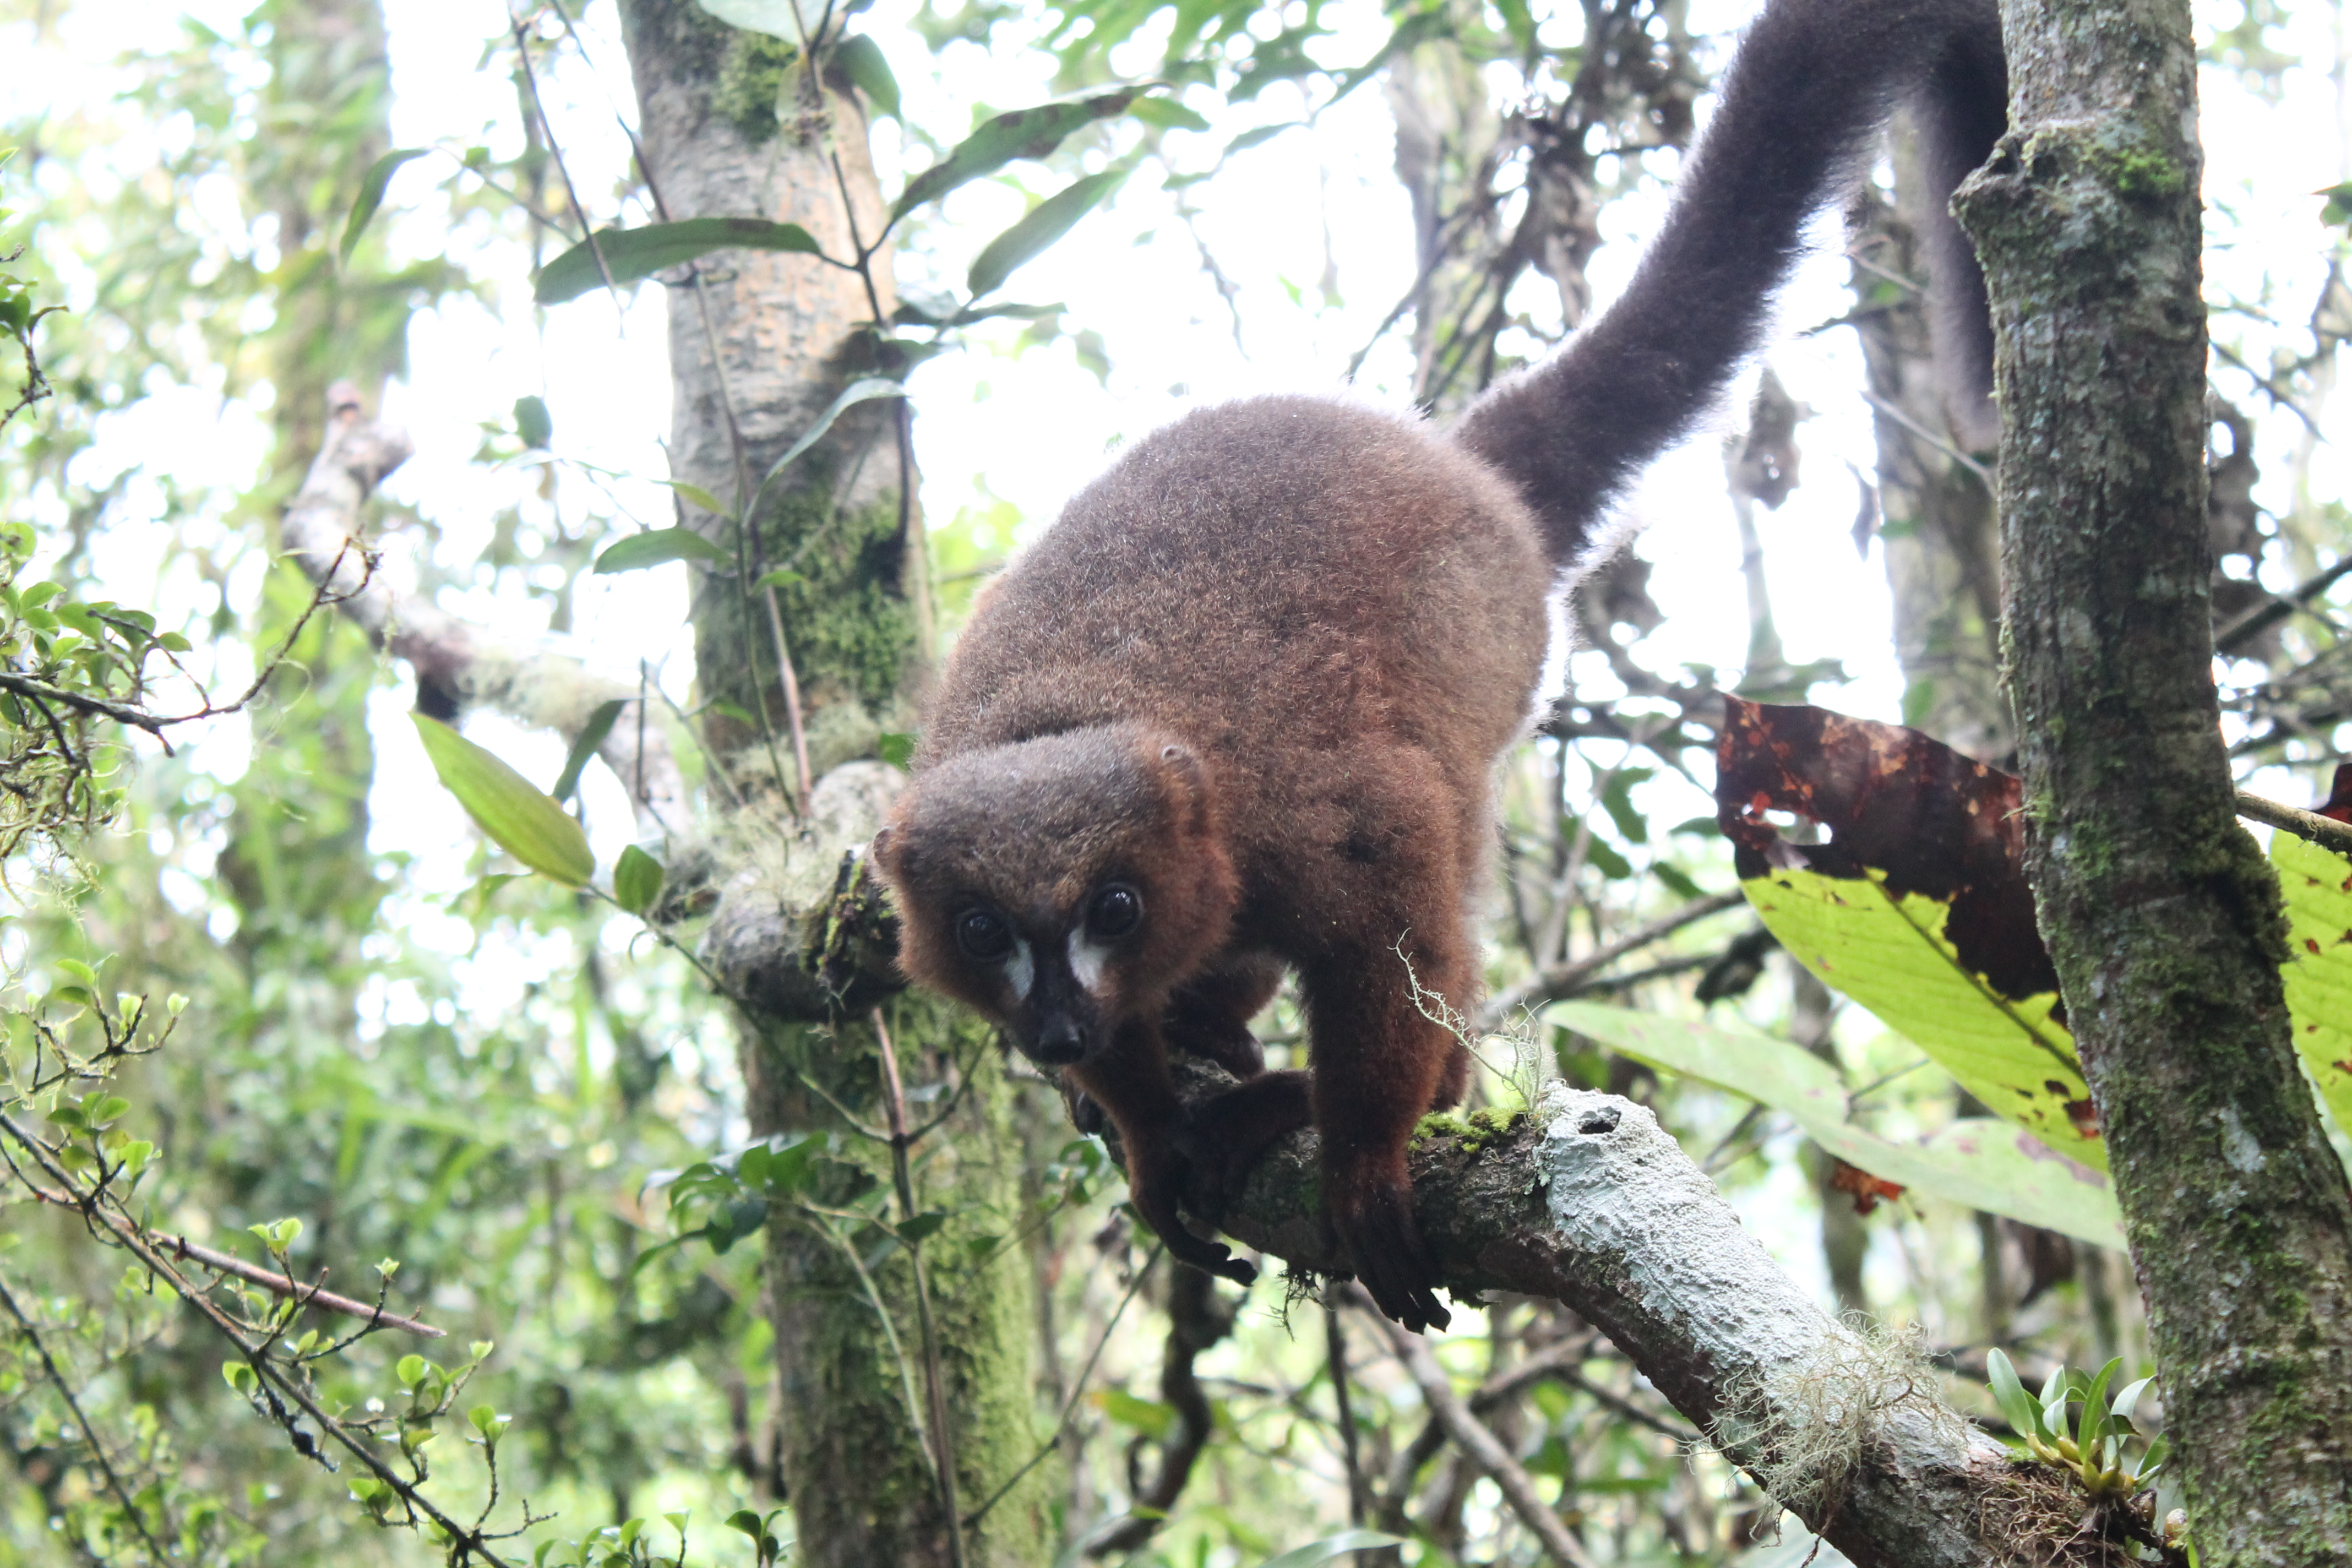 Red-bellied lemurs maintain gut health through touching and 'huddling'